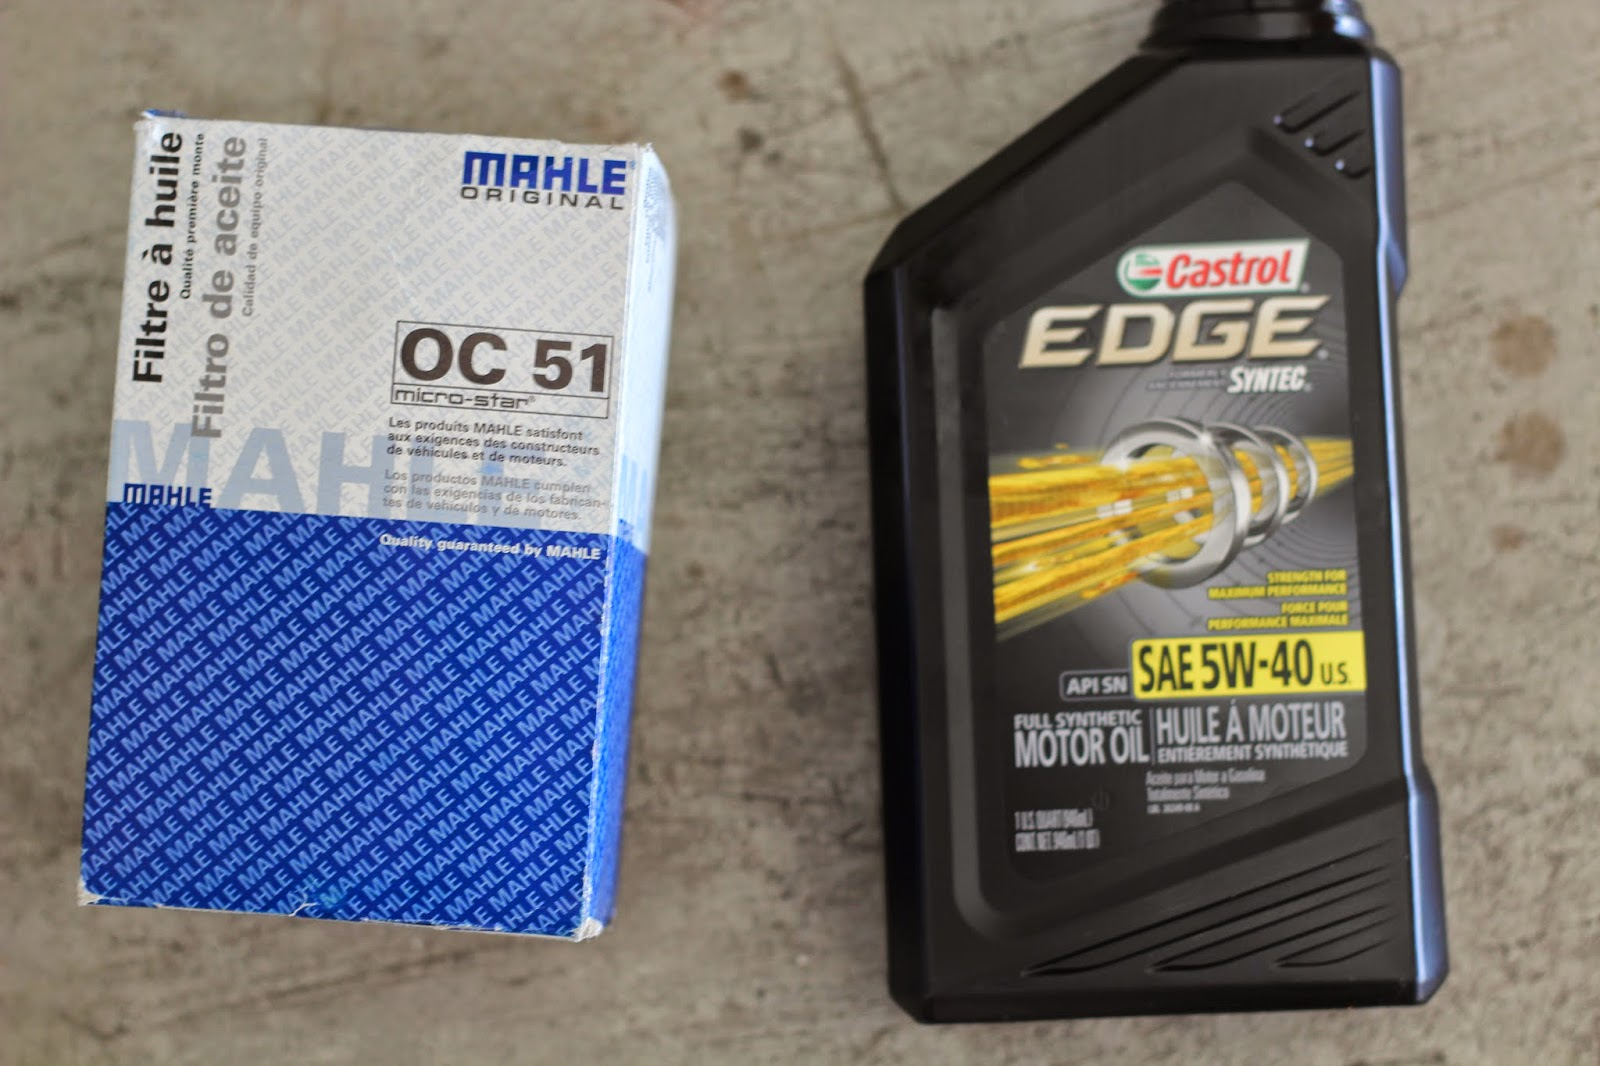 medium resolution of 5 i have been using oc 51 mahle filter and sae 5w 40 castrol take new filter and dip screw driver into fresh oil lubricate the rubber seal on the